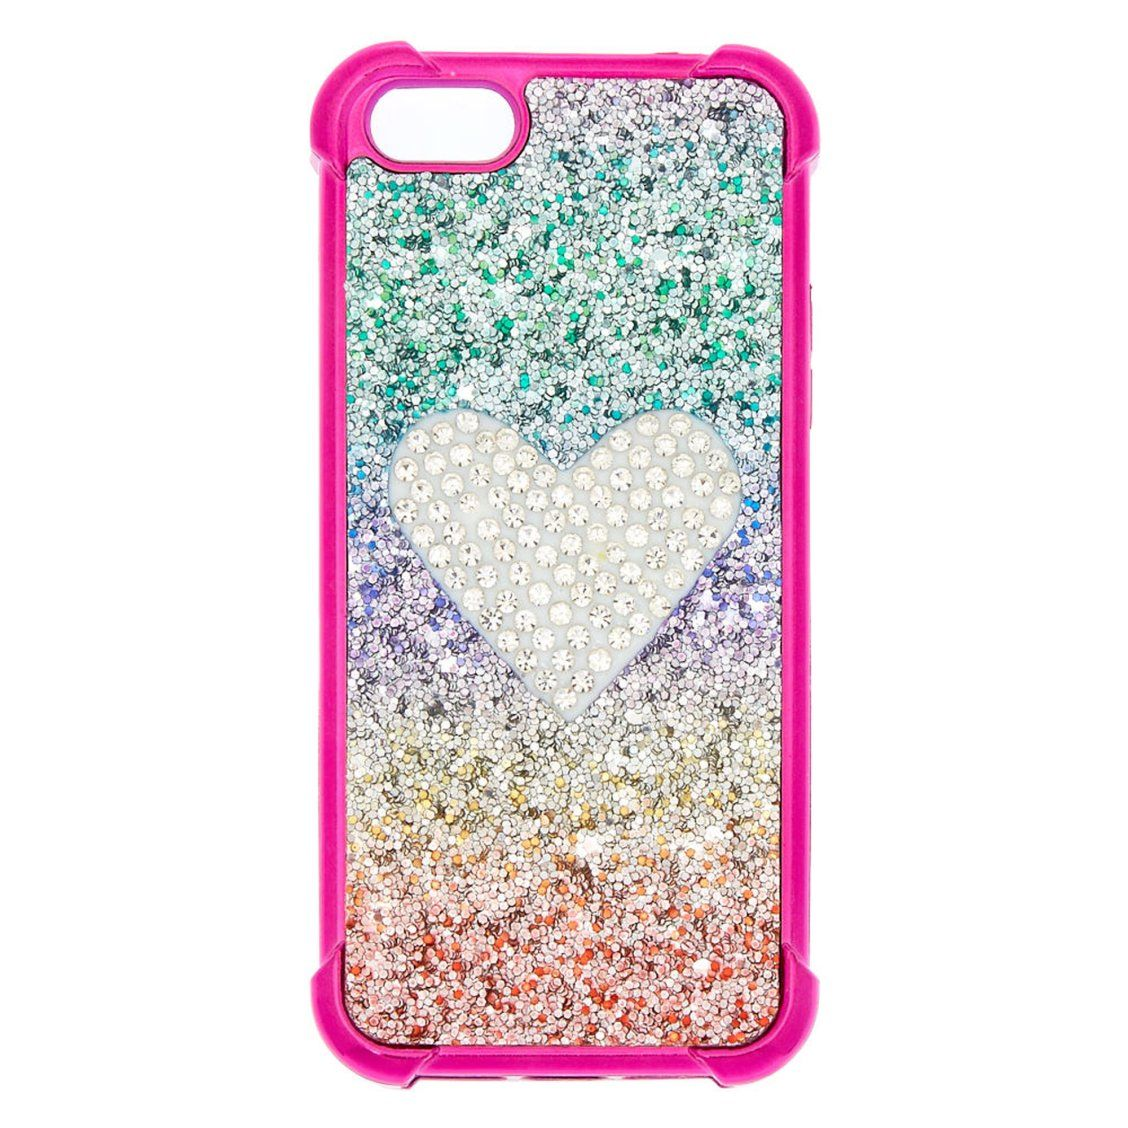 newest 6043d 0bac4 Rainbow Glitter Heart Protective Phone Case | Make your phone look ...